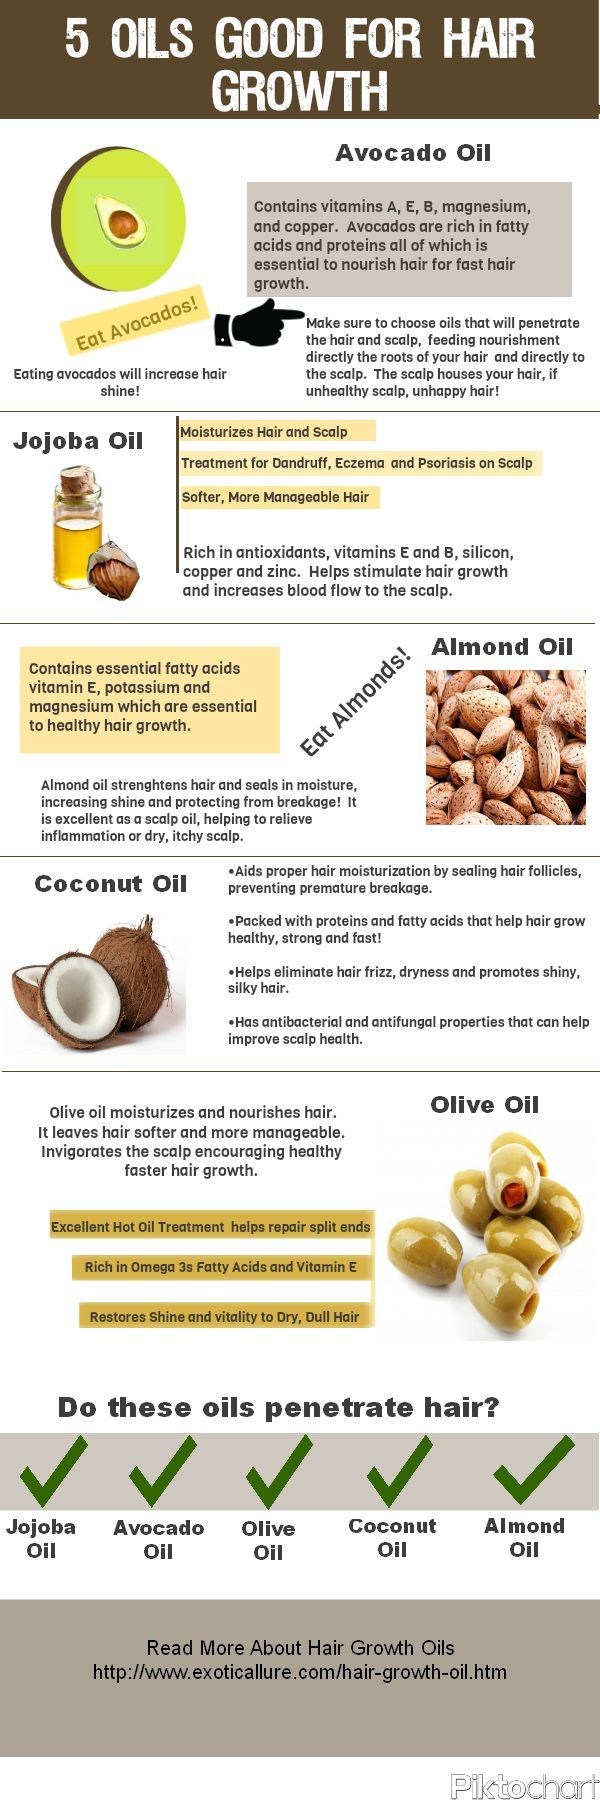 Oils Good For Hair Growth